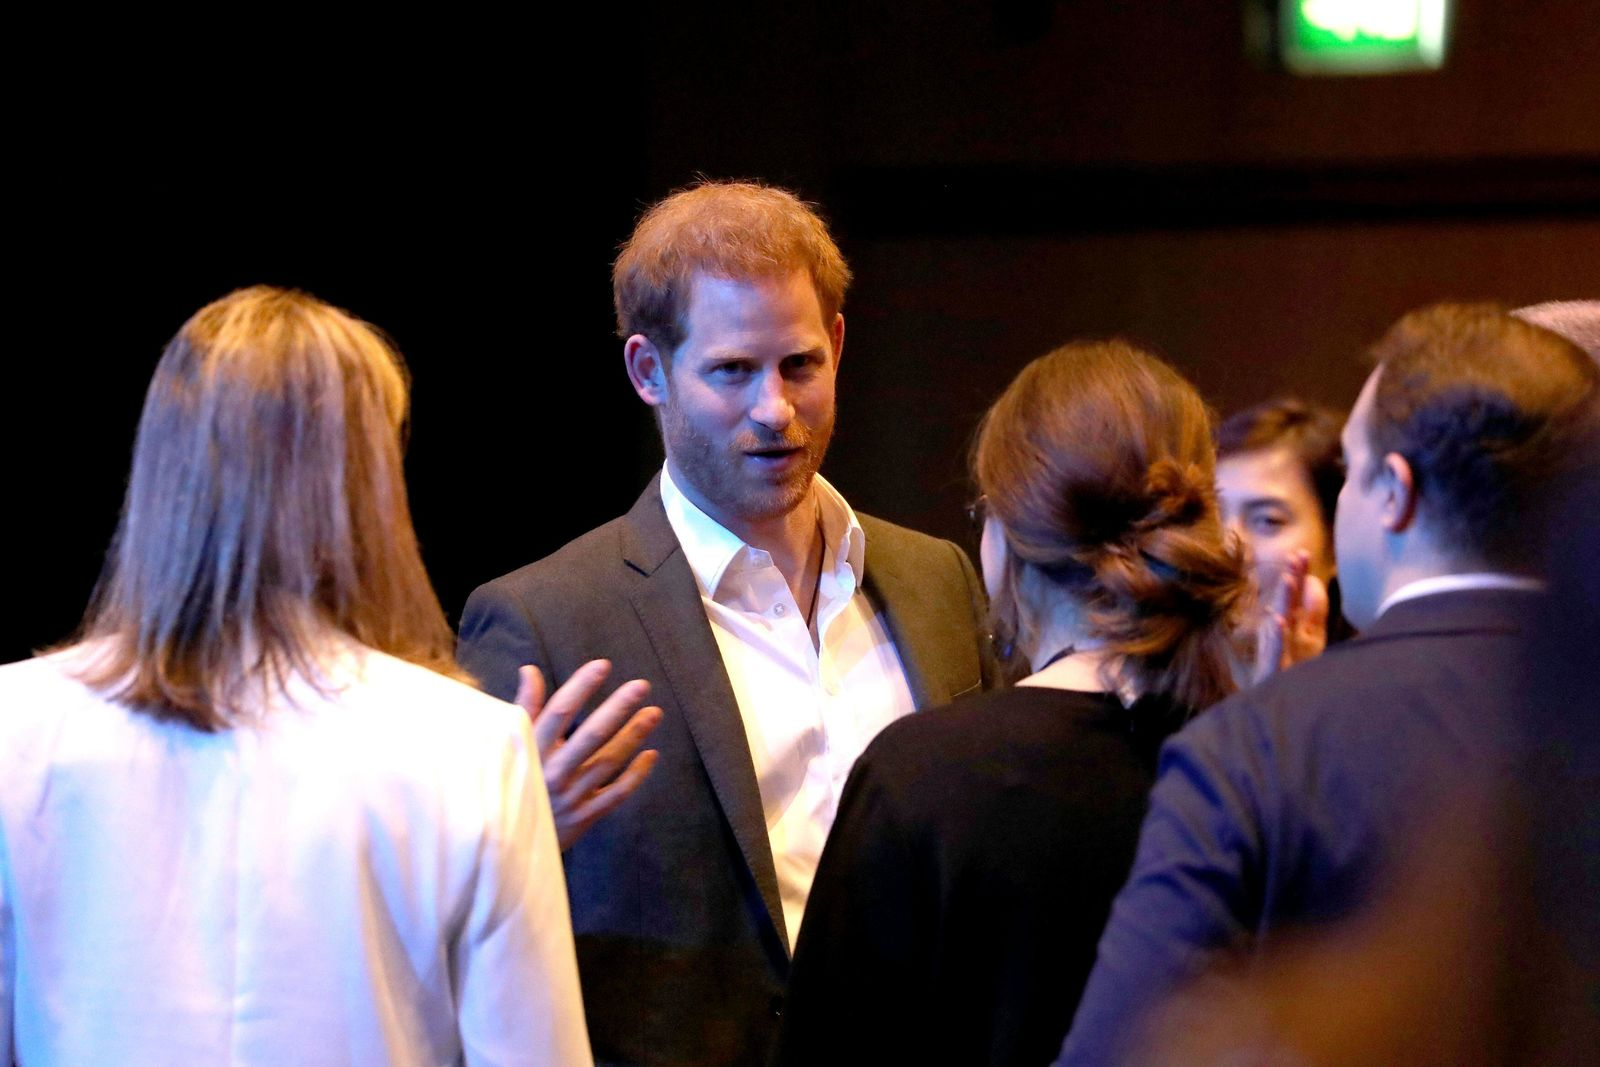 Britain's Prince Harry, centre, speaks, during a sustainable tourism summit at the Edinburgh International Conference Centre in Edinburgh, Scotland, Wednesday, Feb. 26, 2020. (Andrew Milligan/Pool Photo via AP)